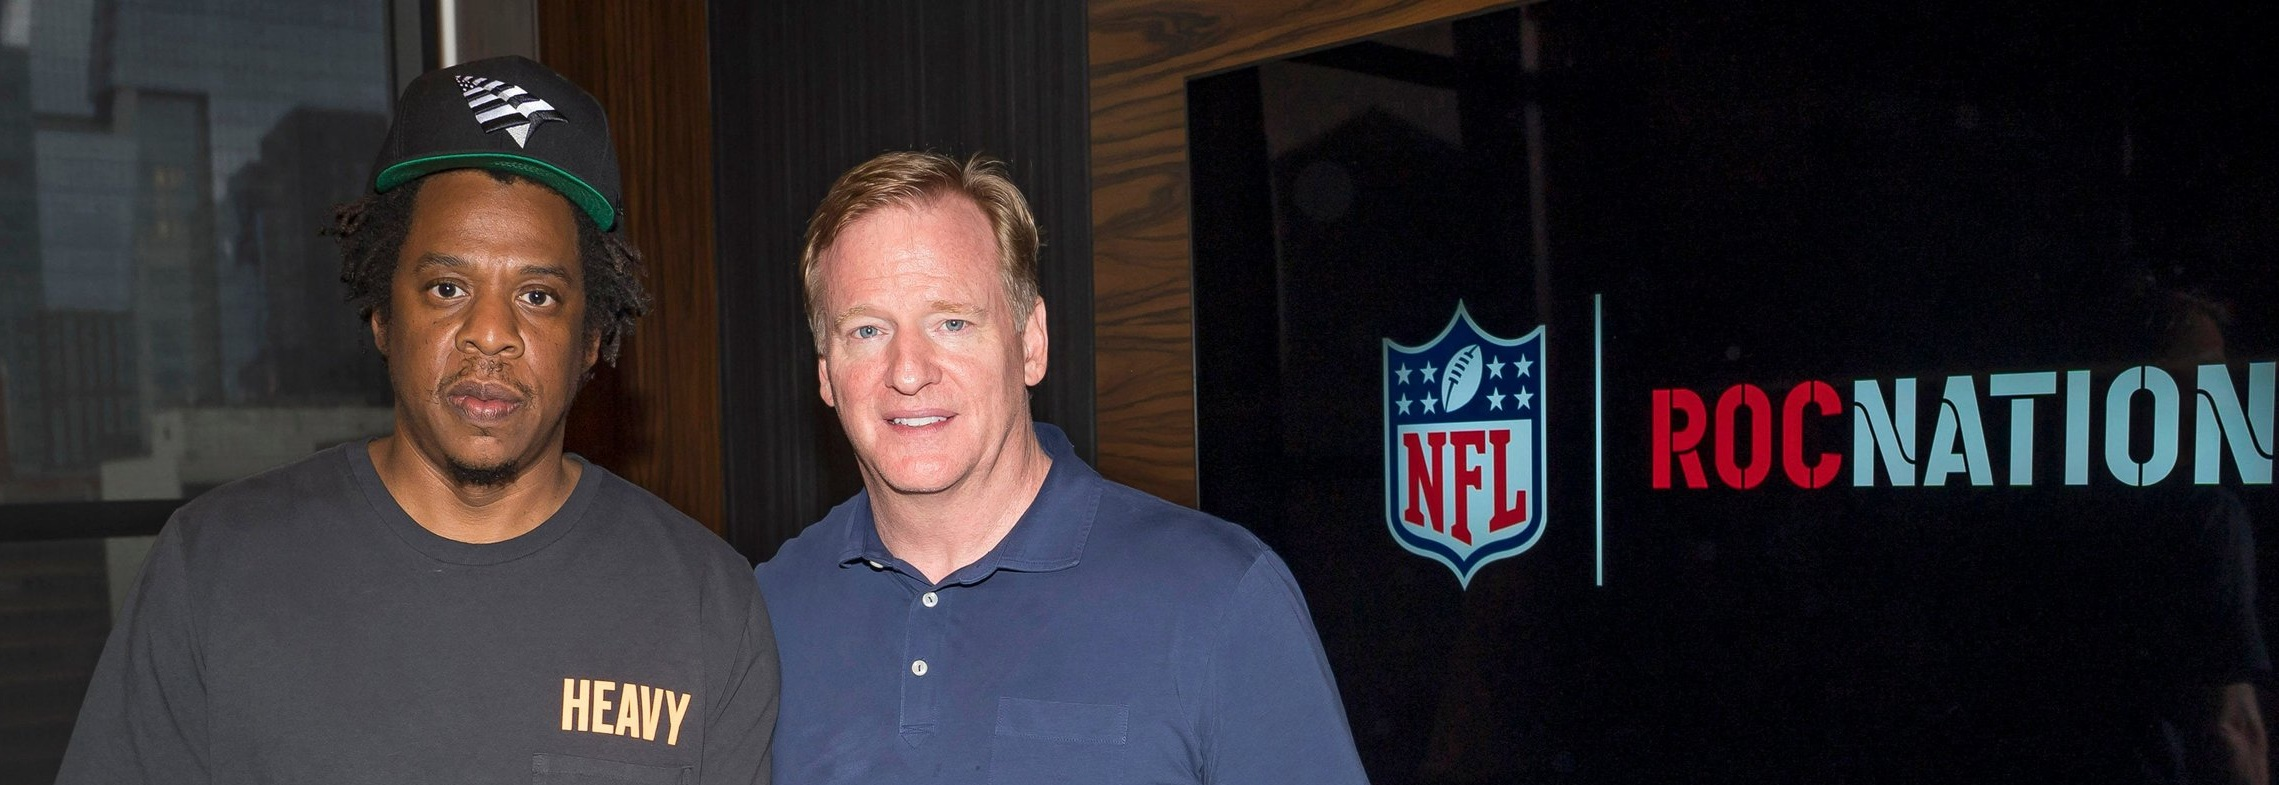 CEO of Roc Nation, Jay-Z and NFL Commissioner, Roger Goodell.